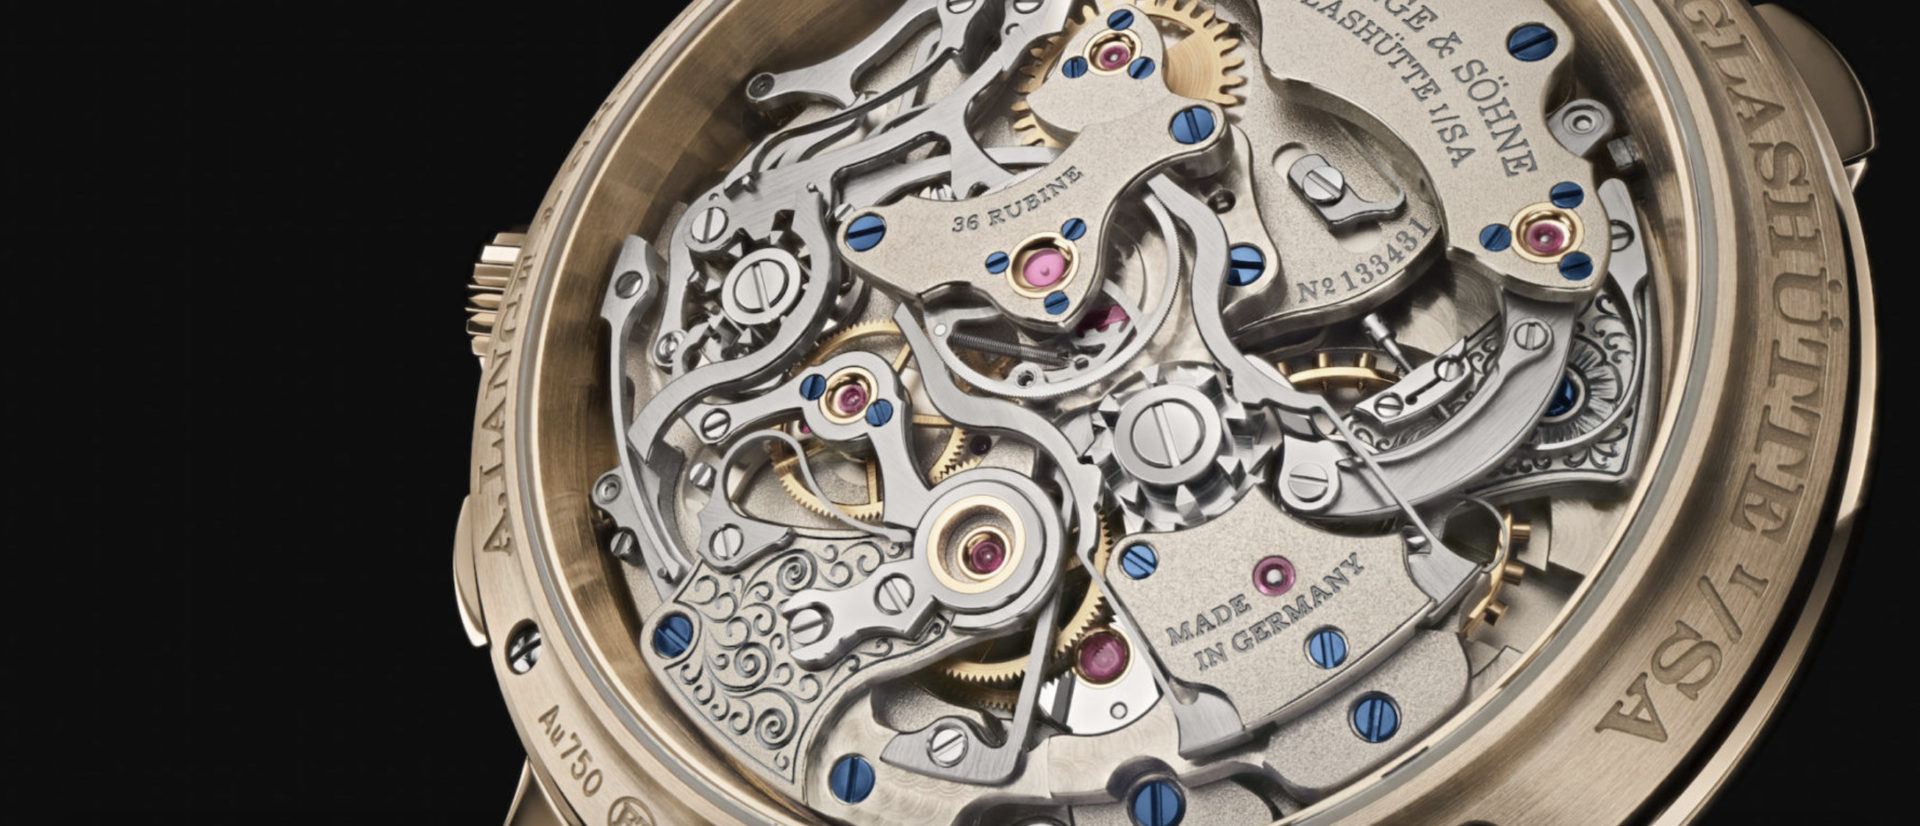 A. Lange & Söhne -  175 years of precision watchmaking